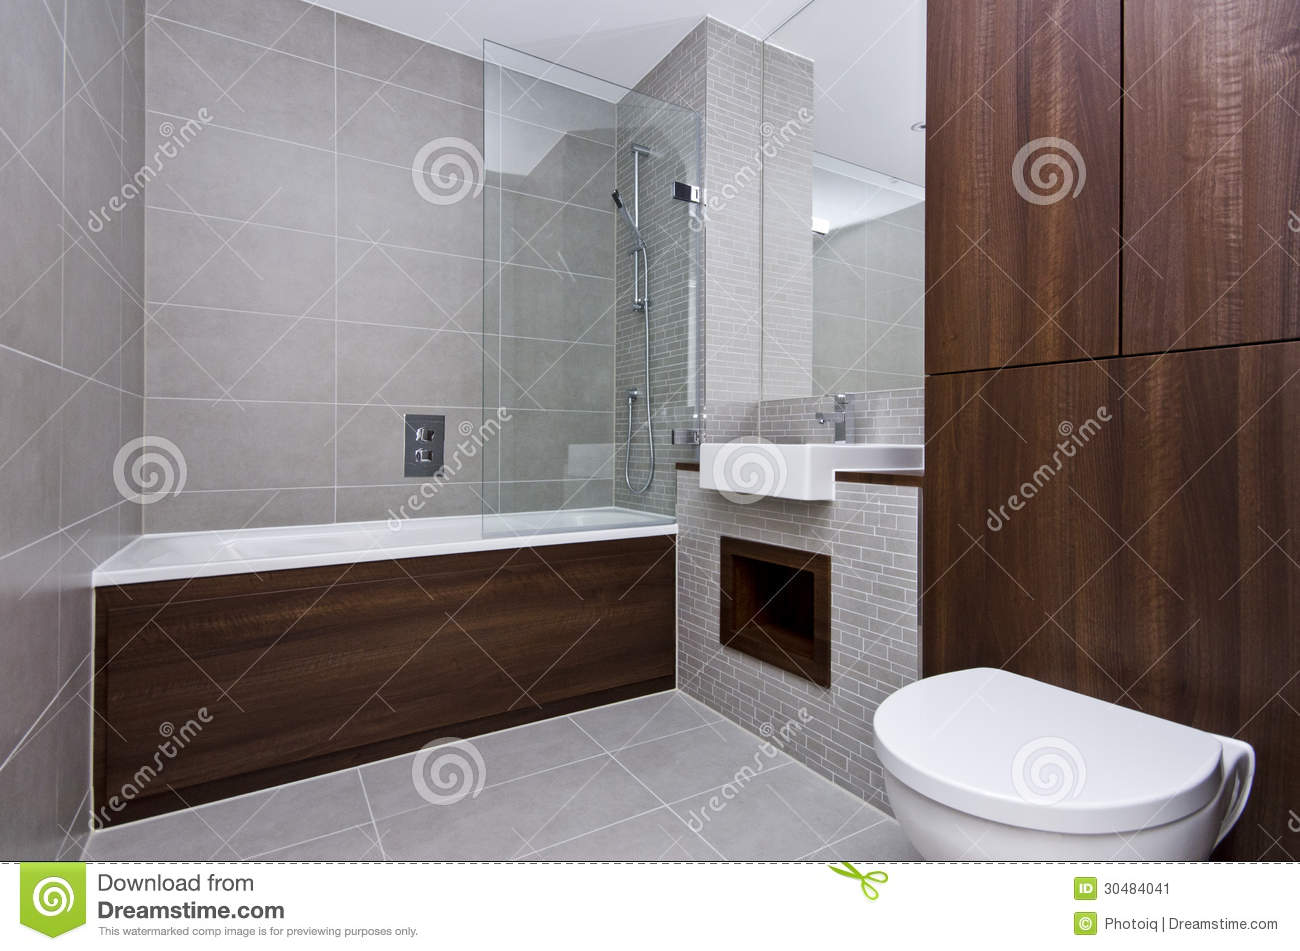 Royalty-Free Stock Photo. Download Modern Three Piece Bathroom ...